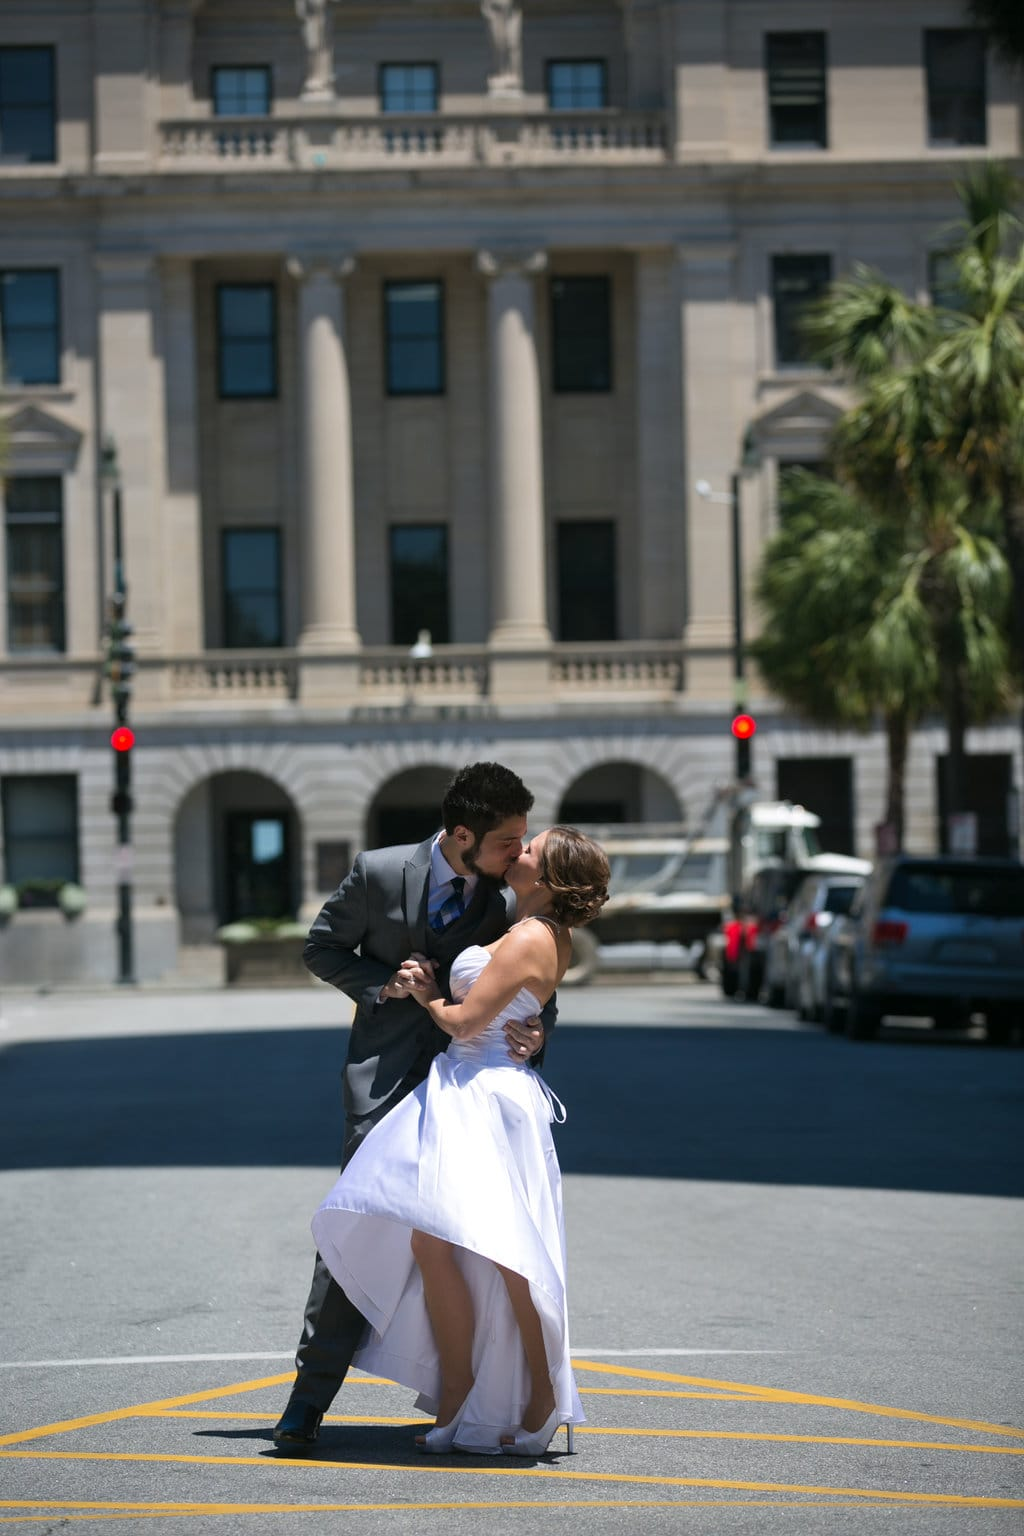 Romantic Wedding Photography in Savannah, GA